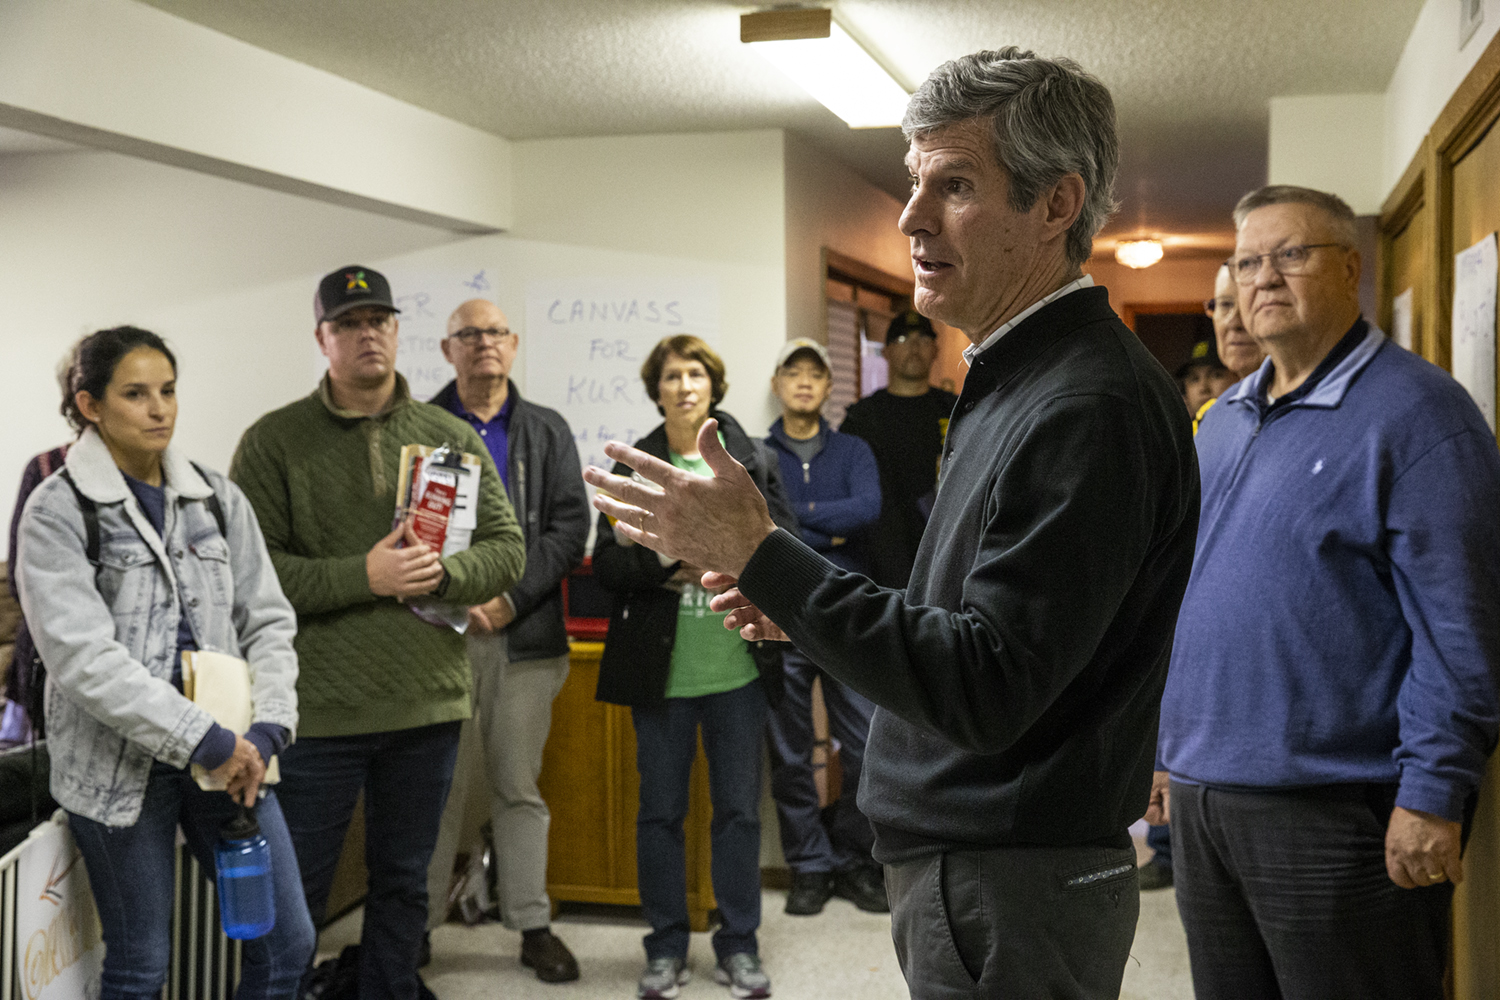 Democratic gubenetorial candidate Fred Hubbell addresses campaign volunteers at a canvassing staging location in the Home of volunteer Janice Wiener on Monday, Nov. 5, 2018.